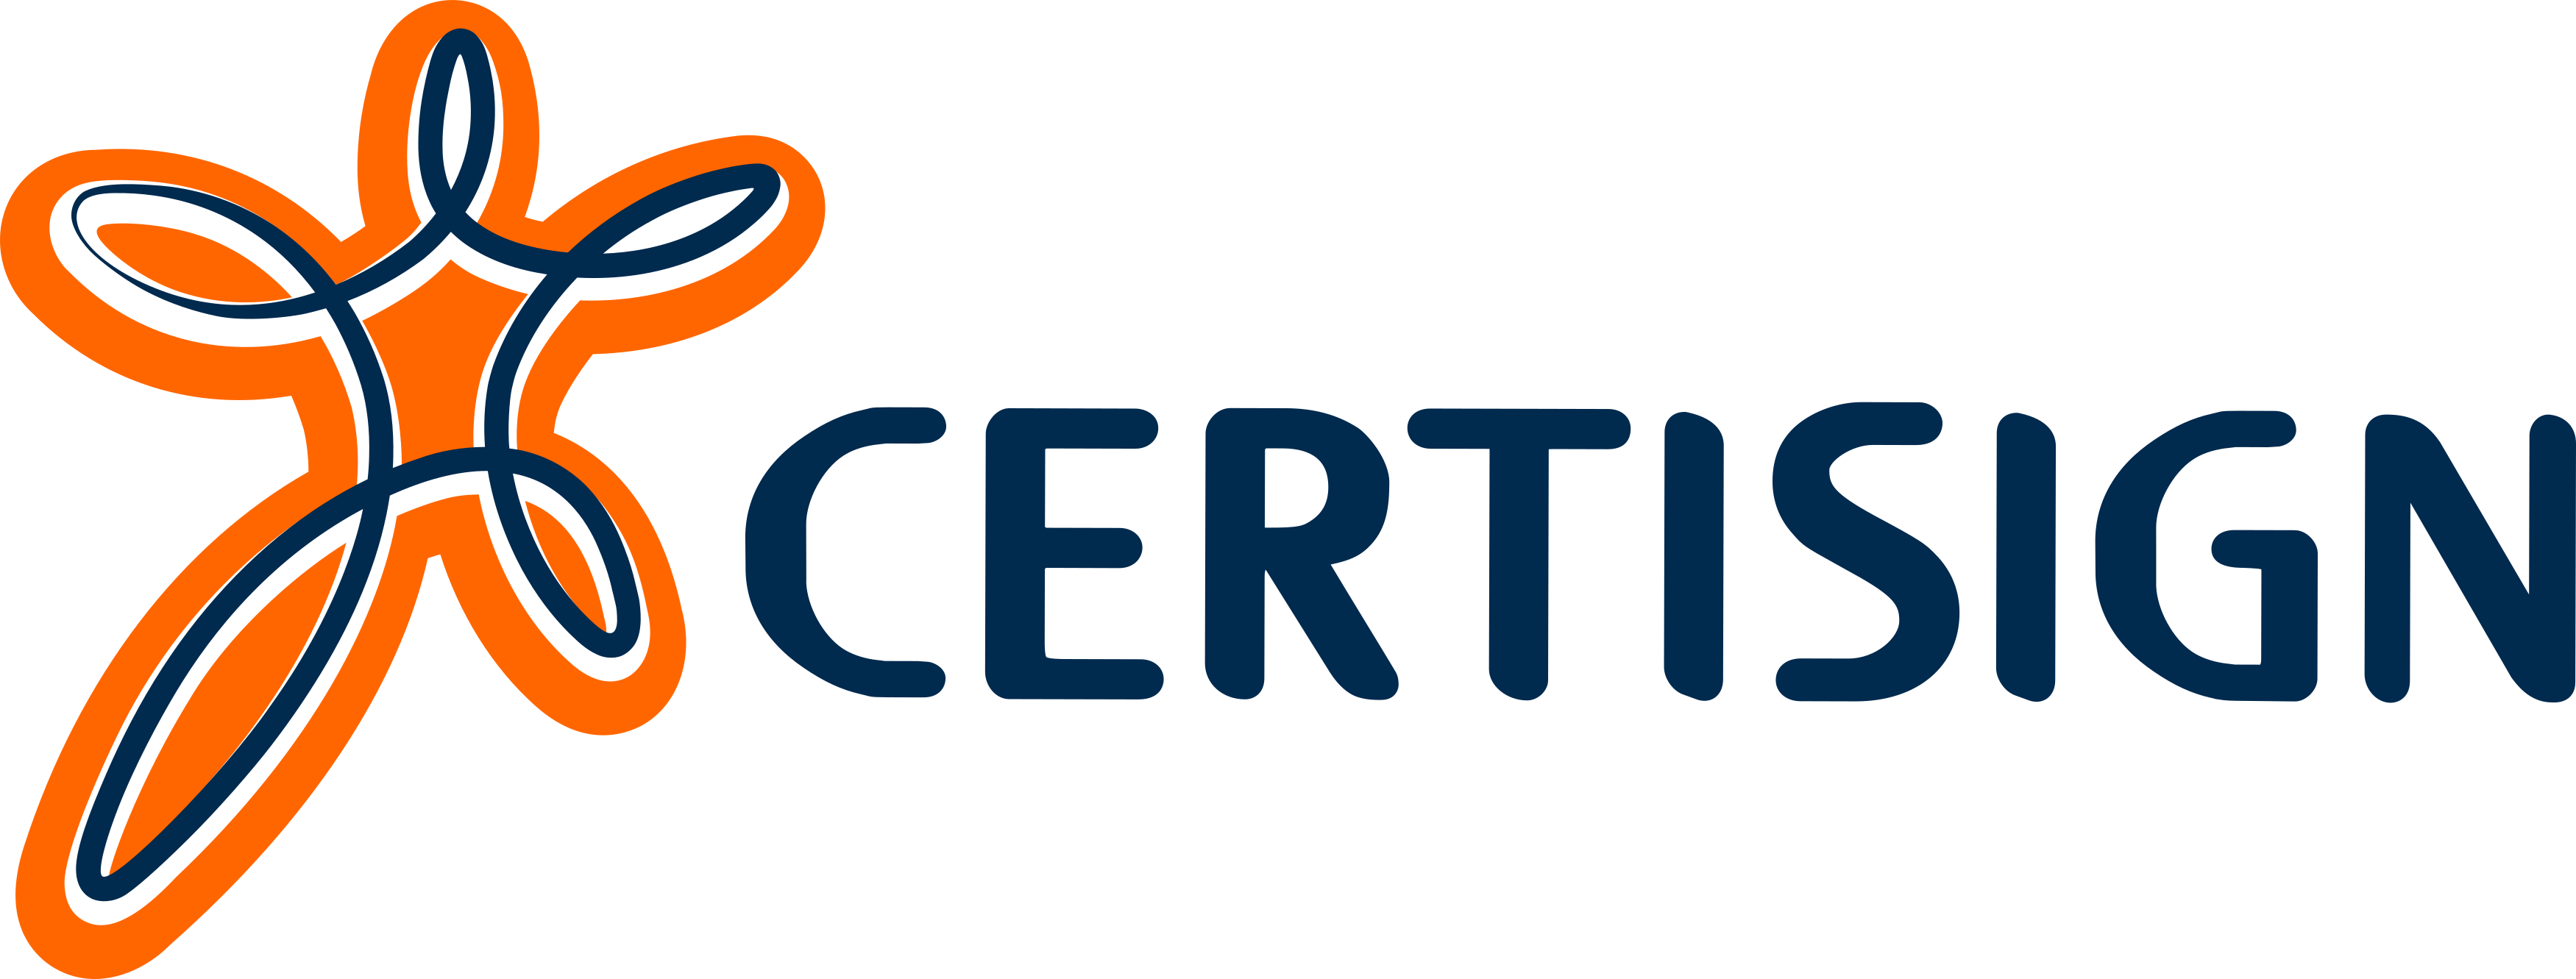 Certisign Logo.